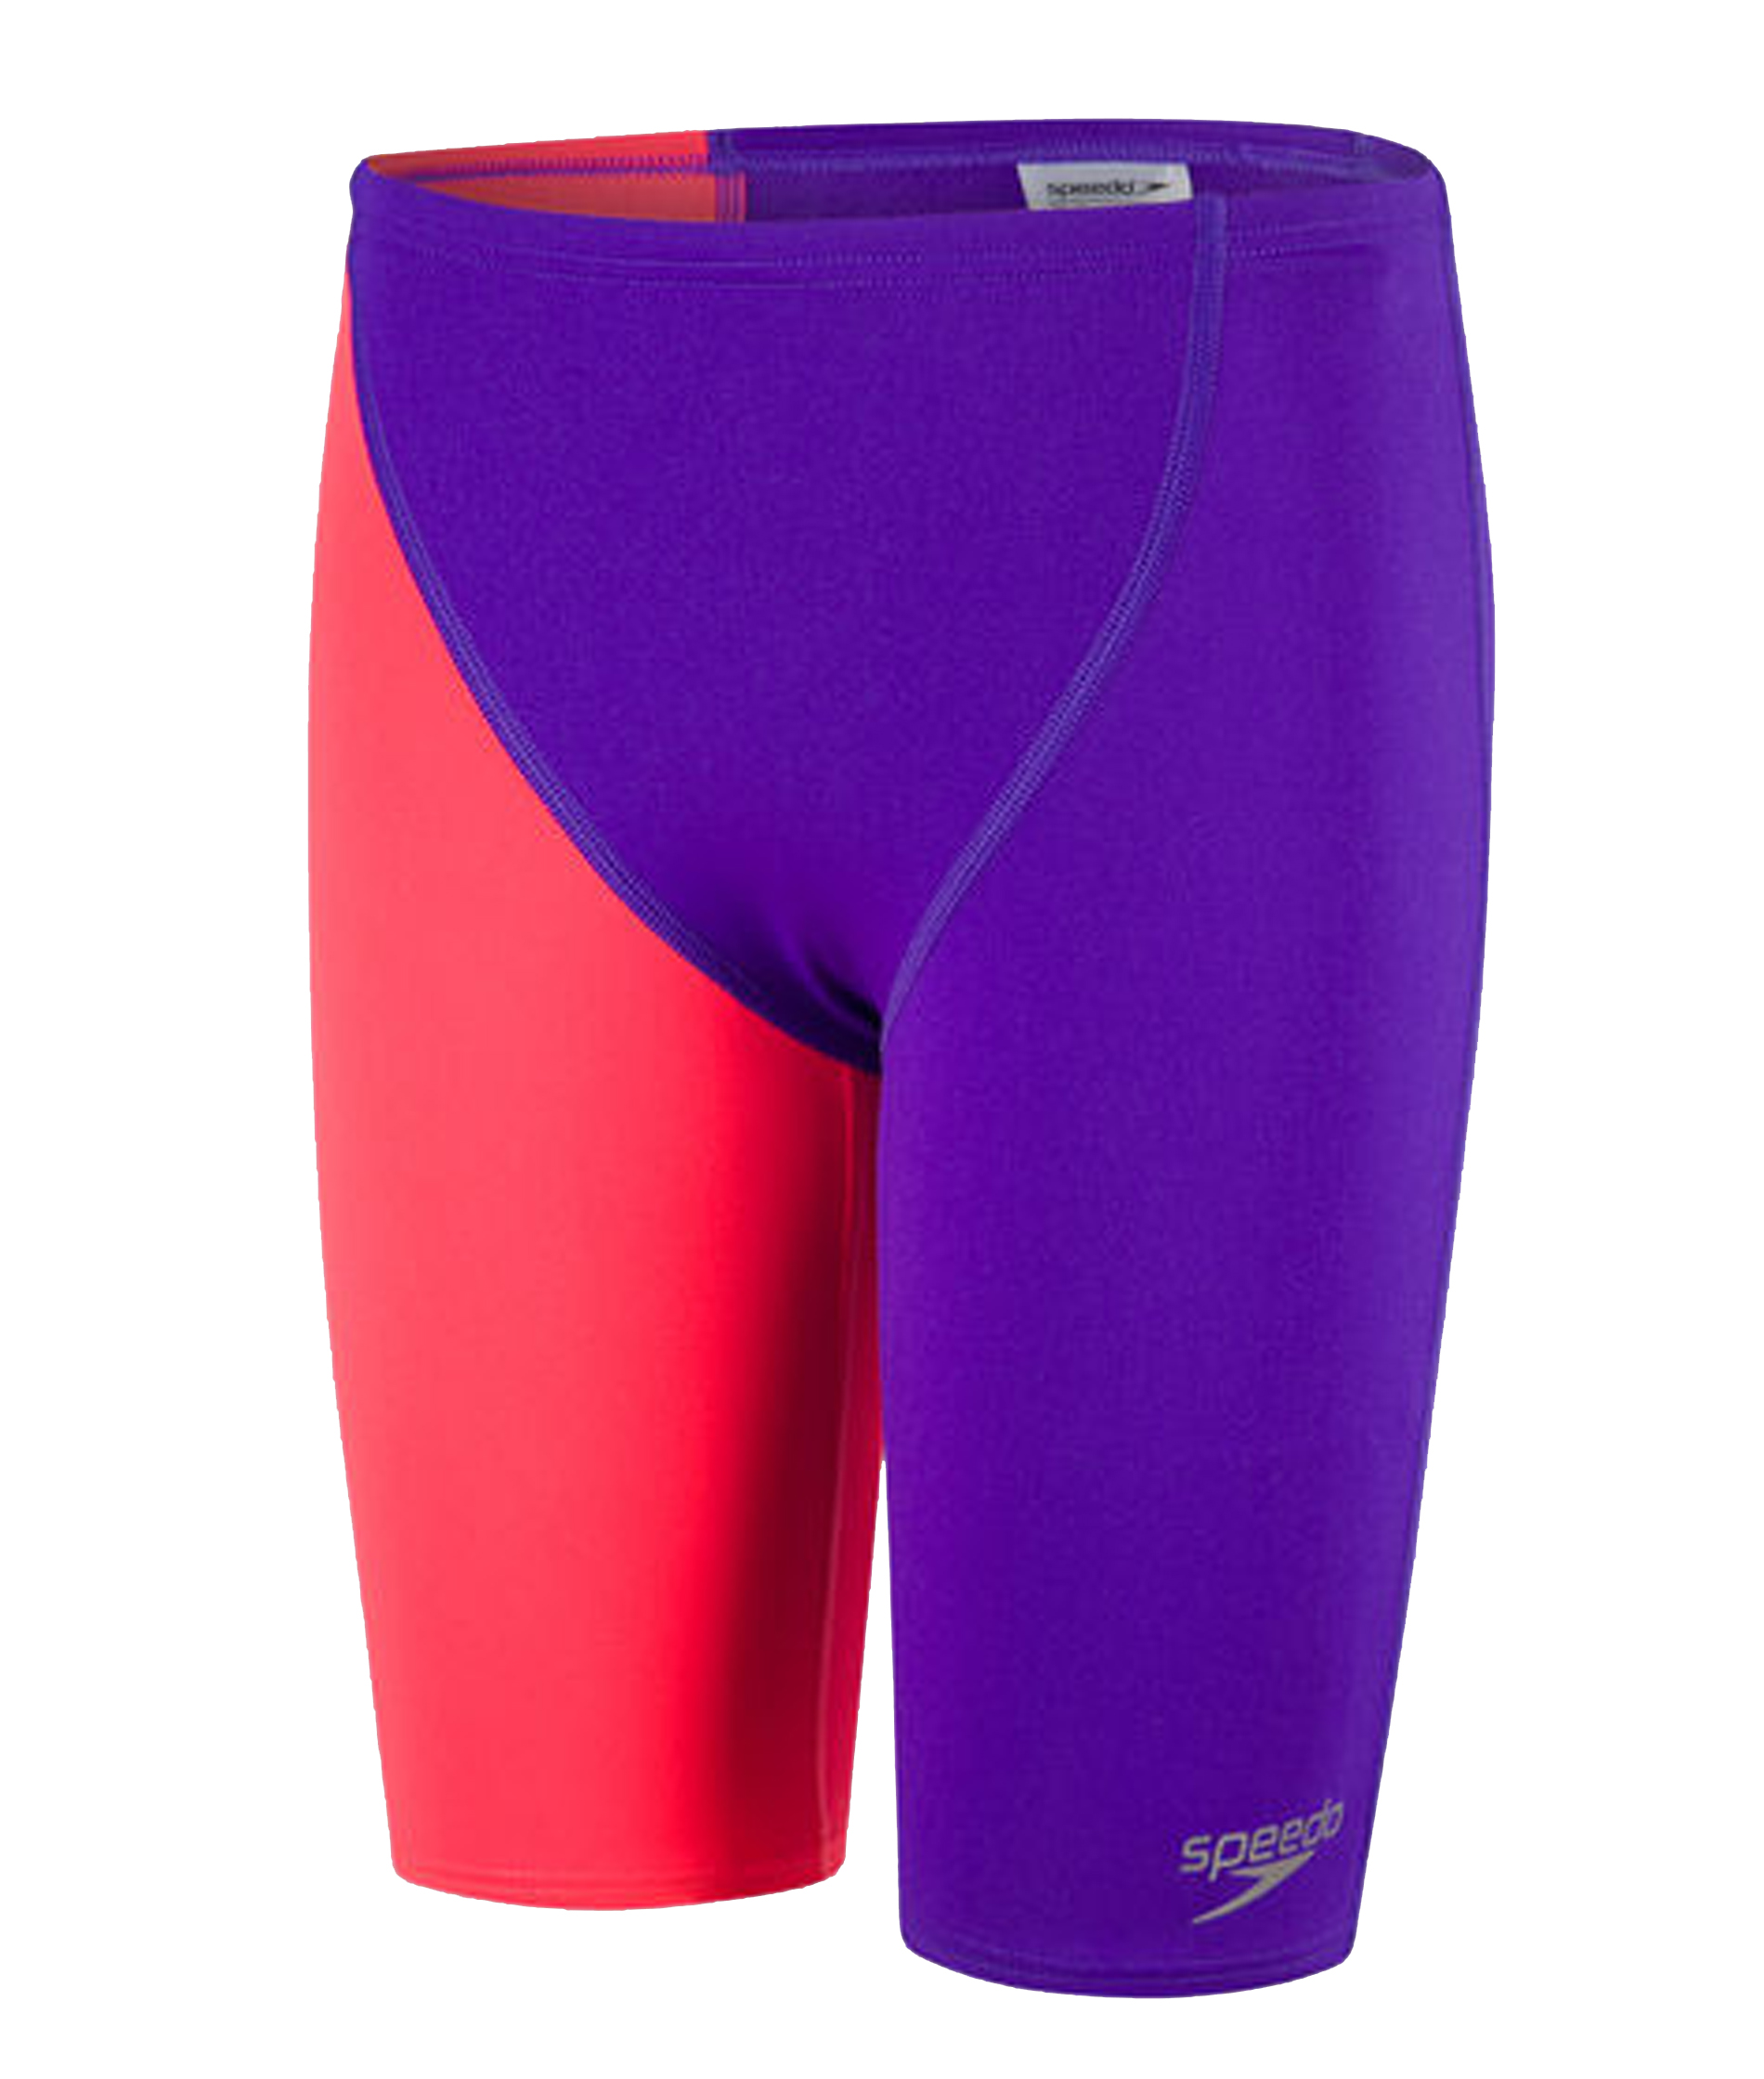 Speedo Junior Fastskin Endurance+ High Waisted Jammer - Purple/Red (32)